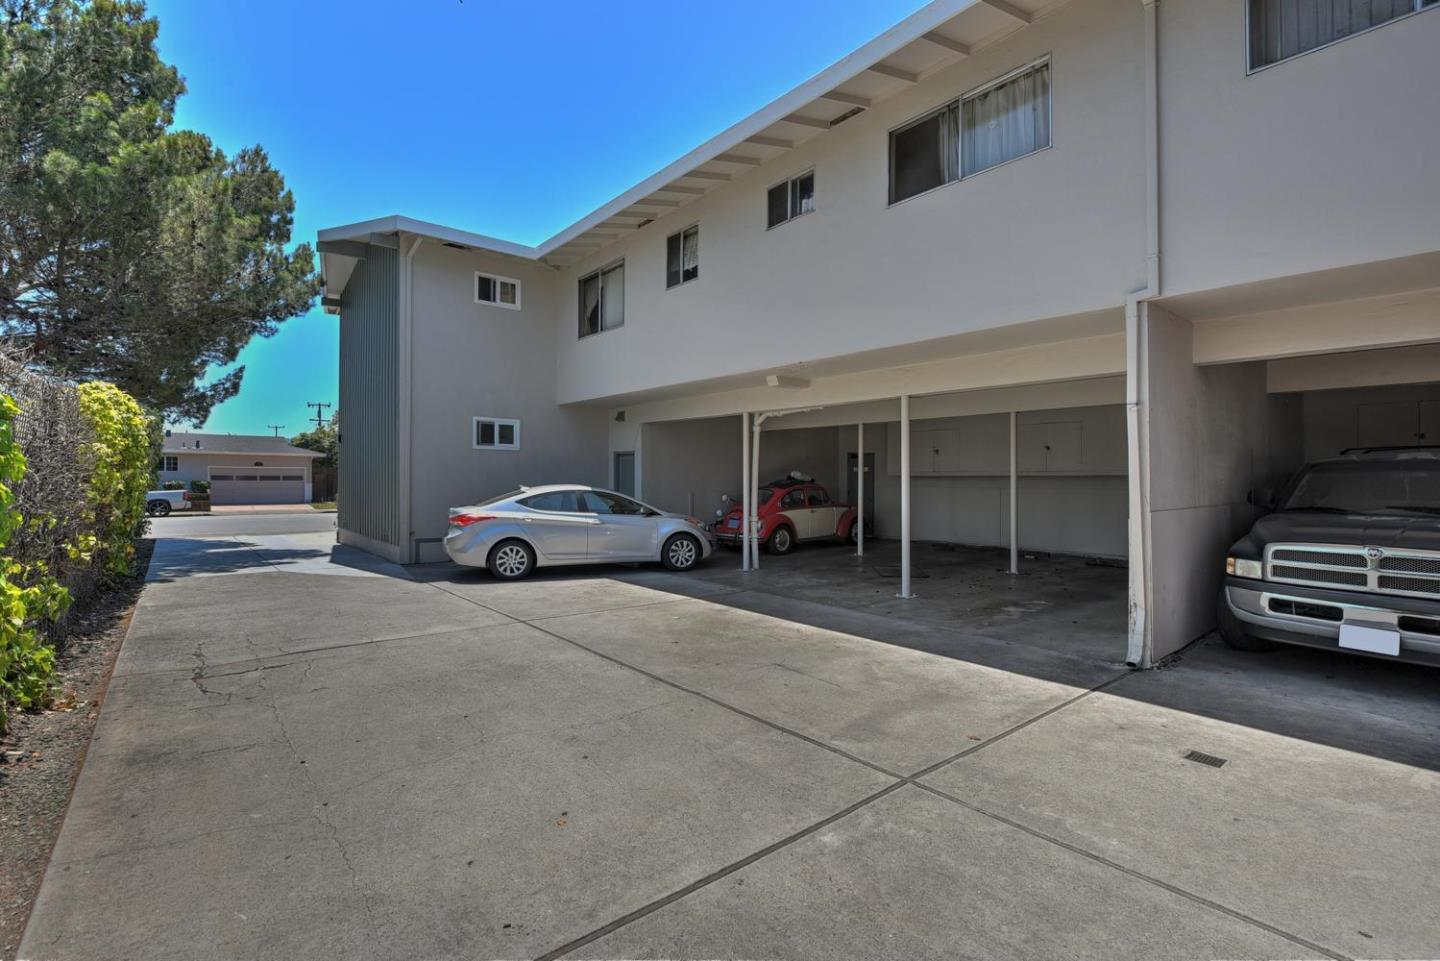 Additional photo for property listing at 849 Bermuda Drive  San Mateo, California 94403 United States